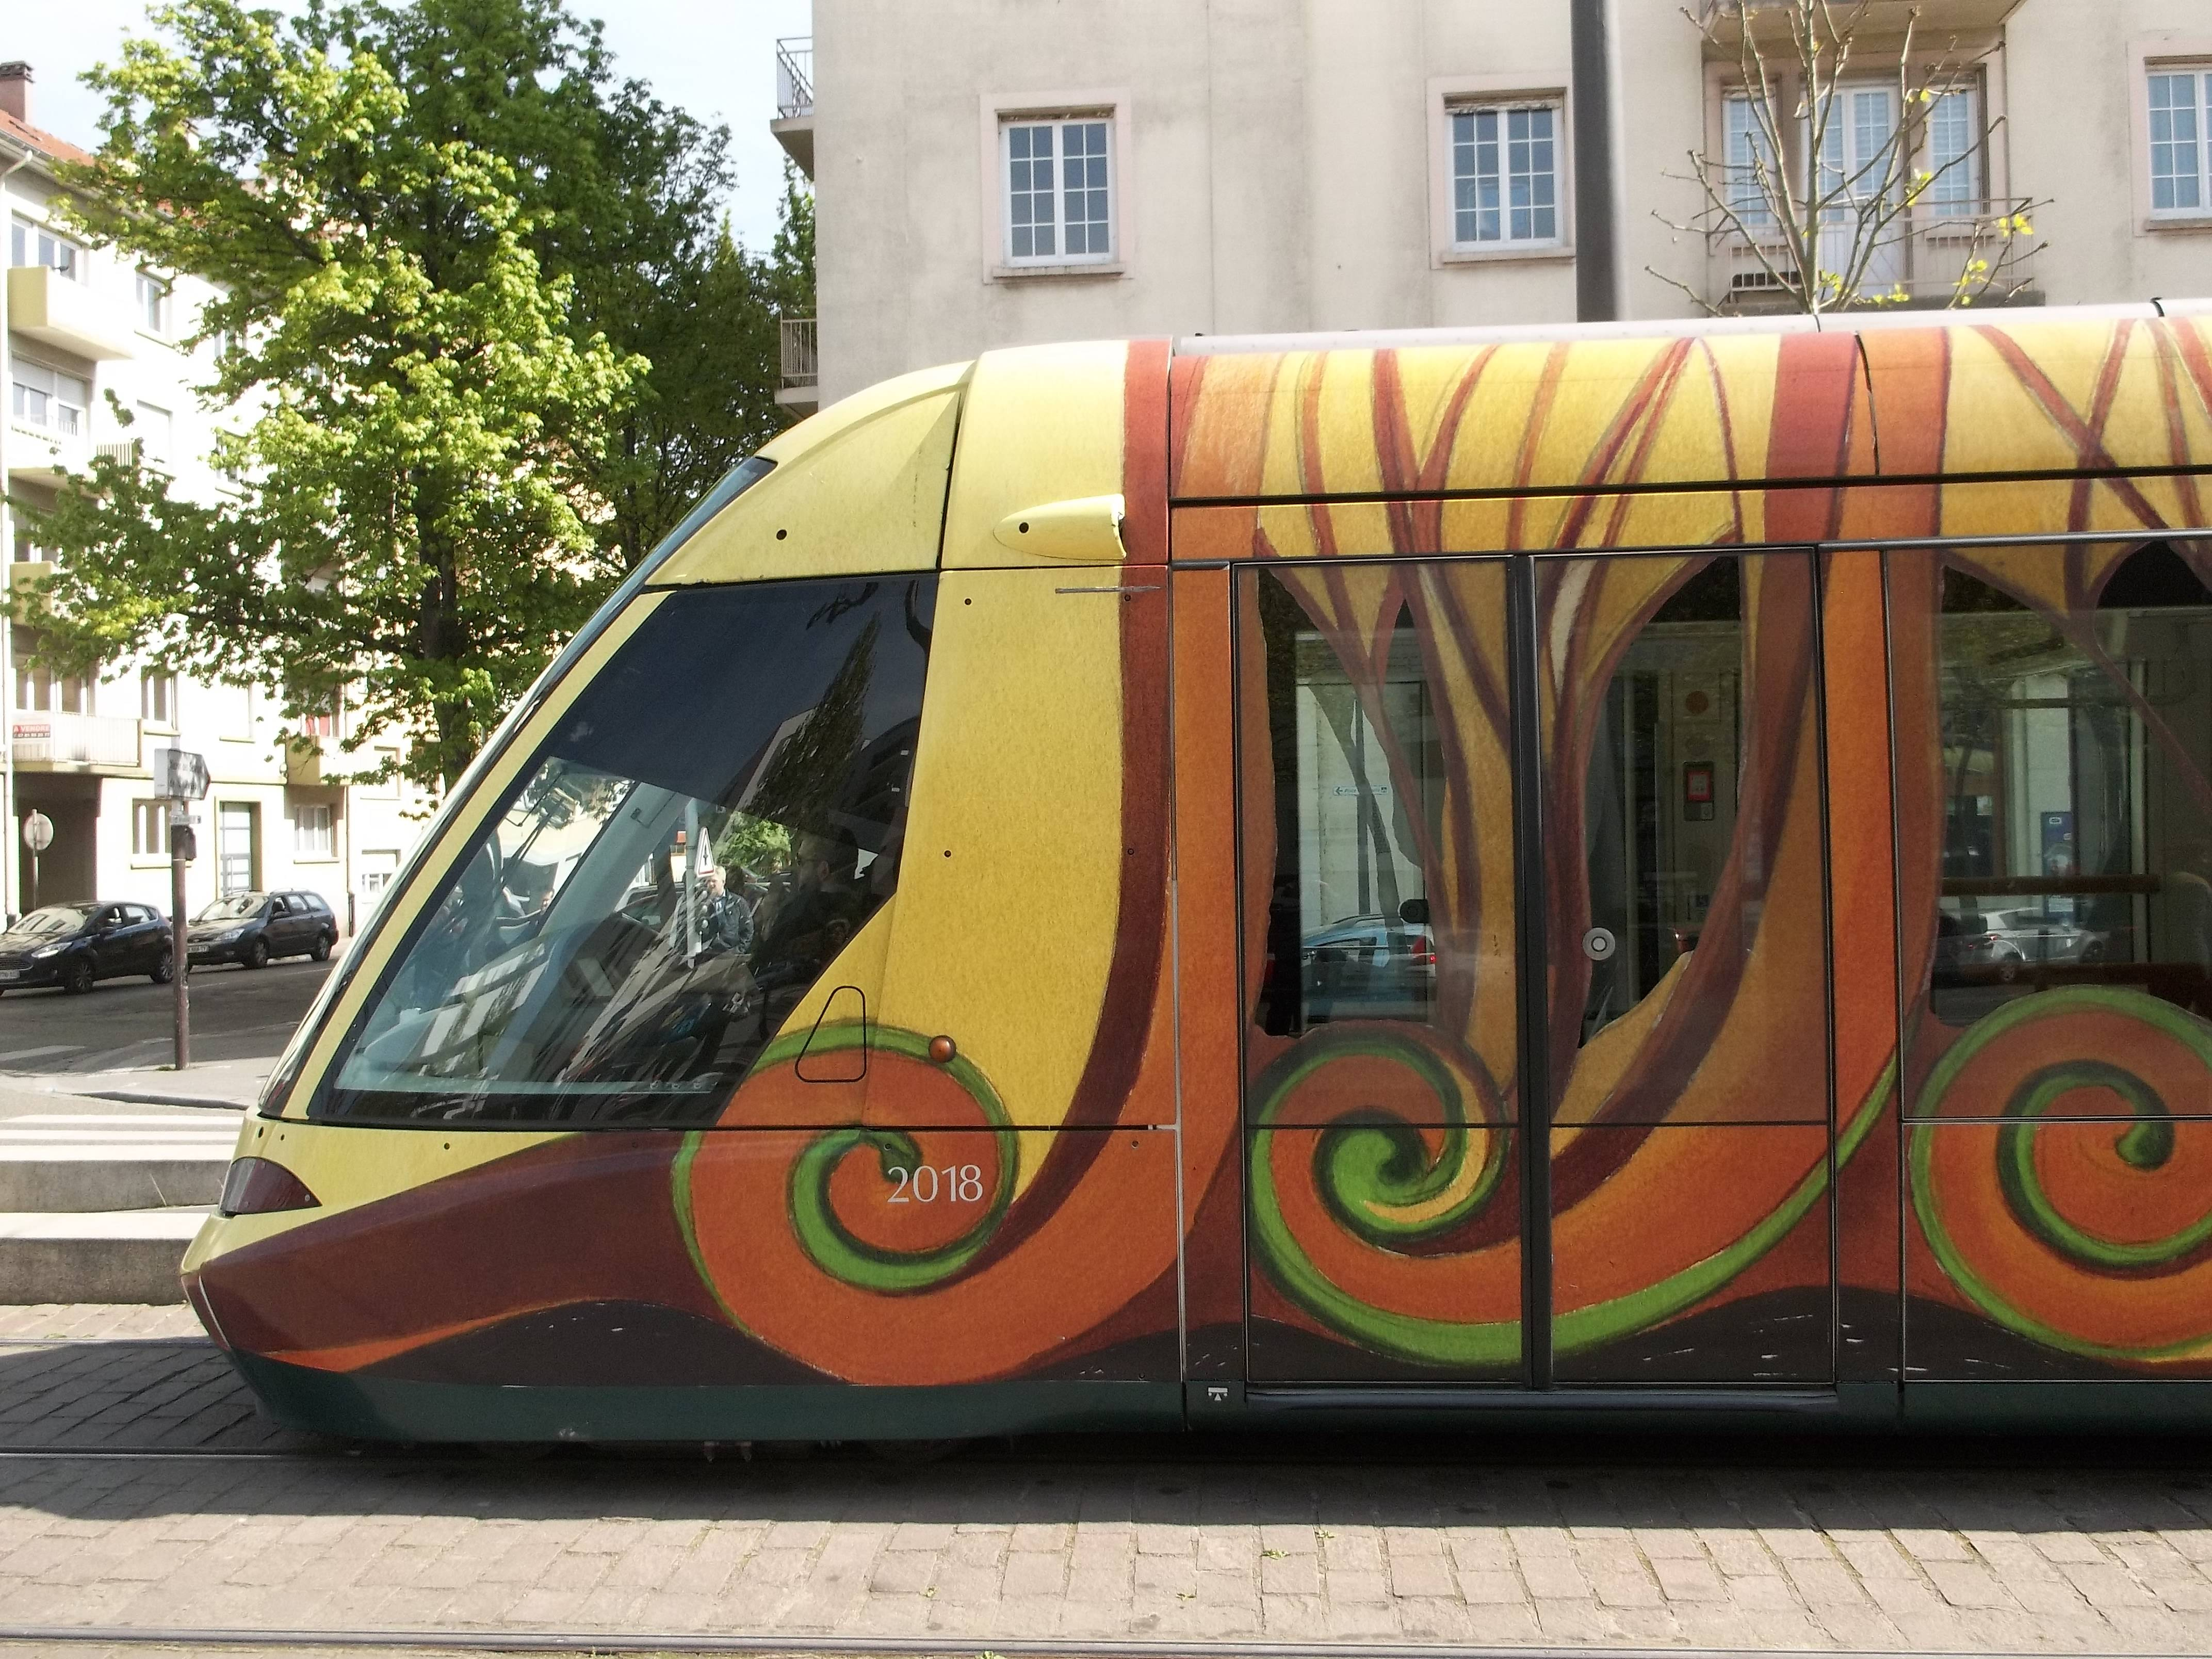 Side profile of the SHADOK tram.